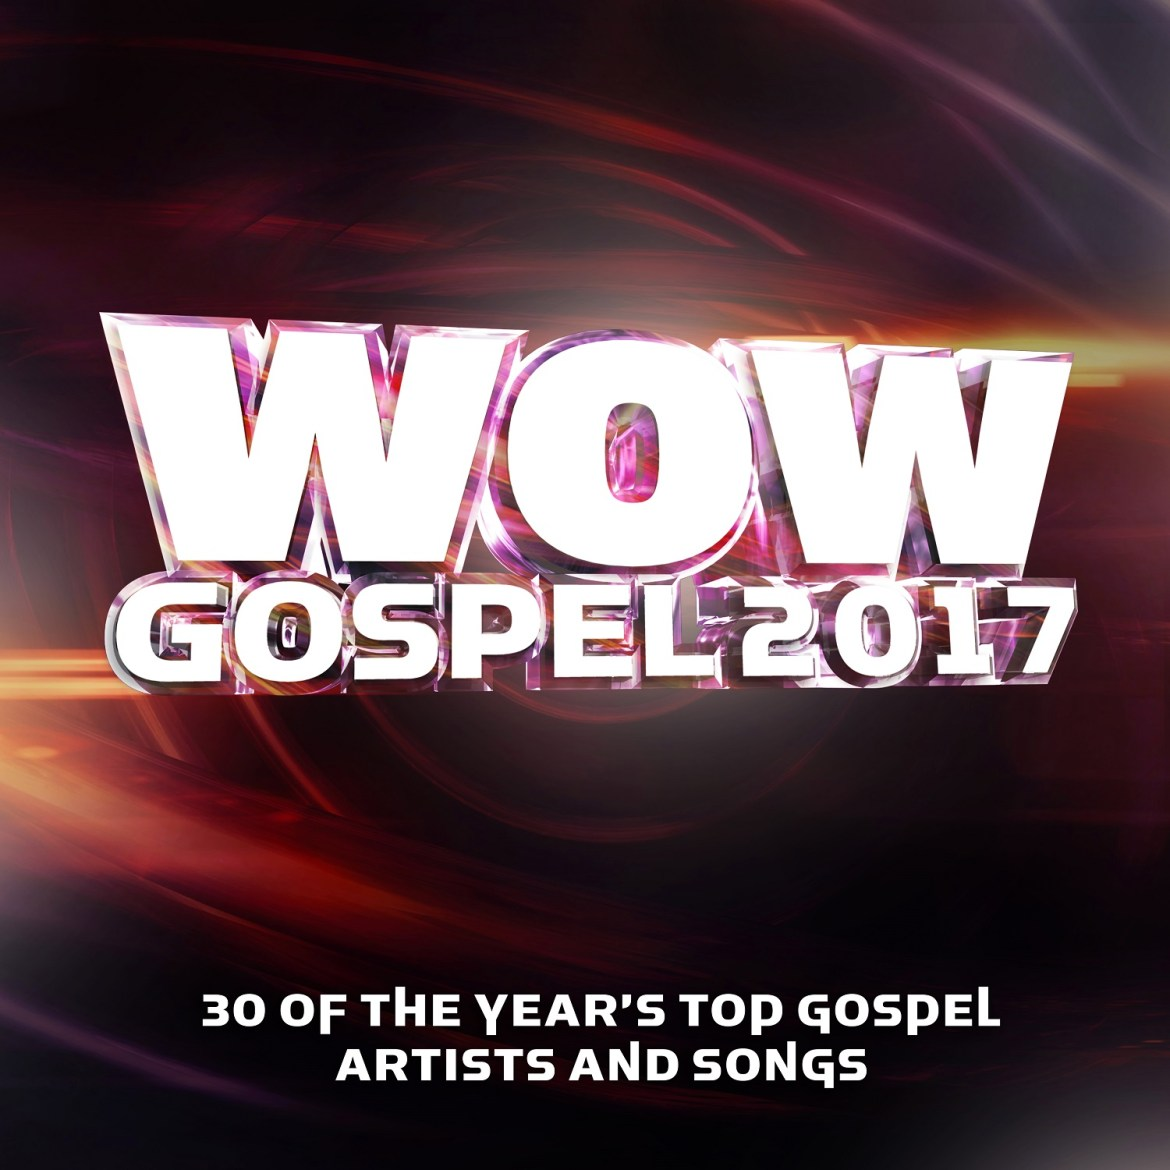 WOW Gospel 2017 Collection Features Hits From Kirk Franklin, Hezekiah Walker And More!